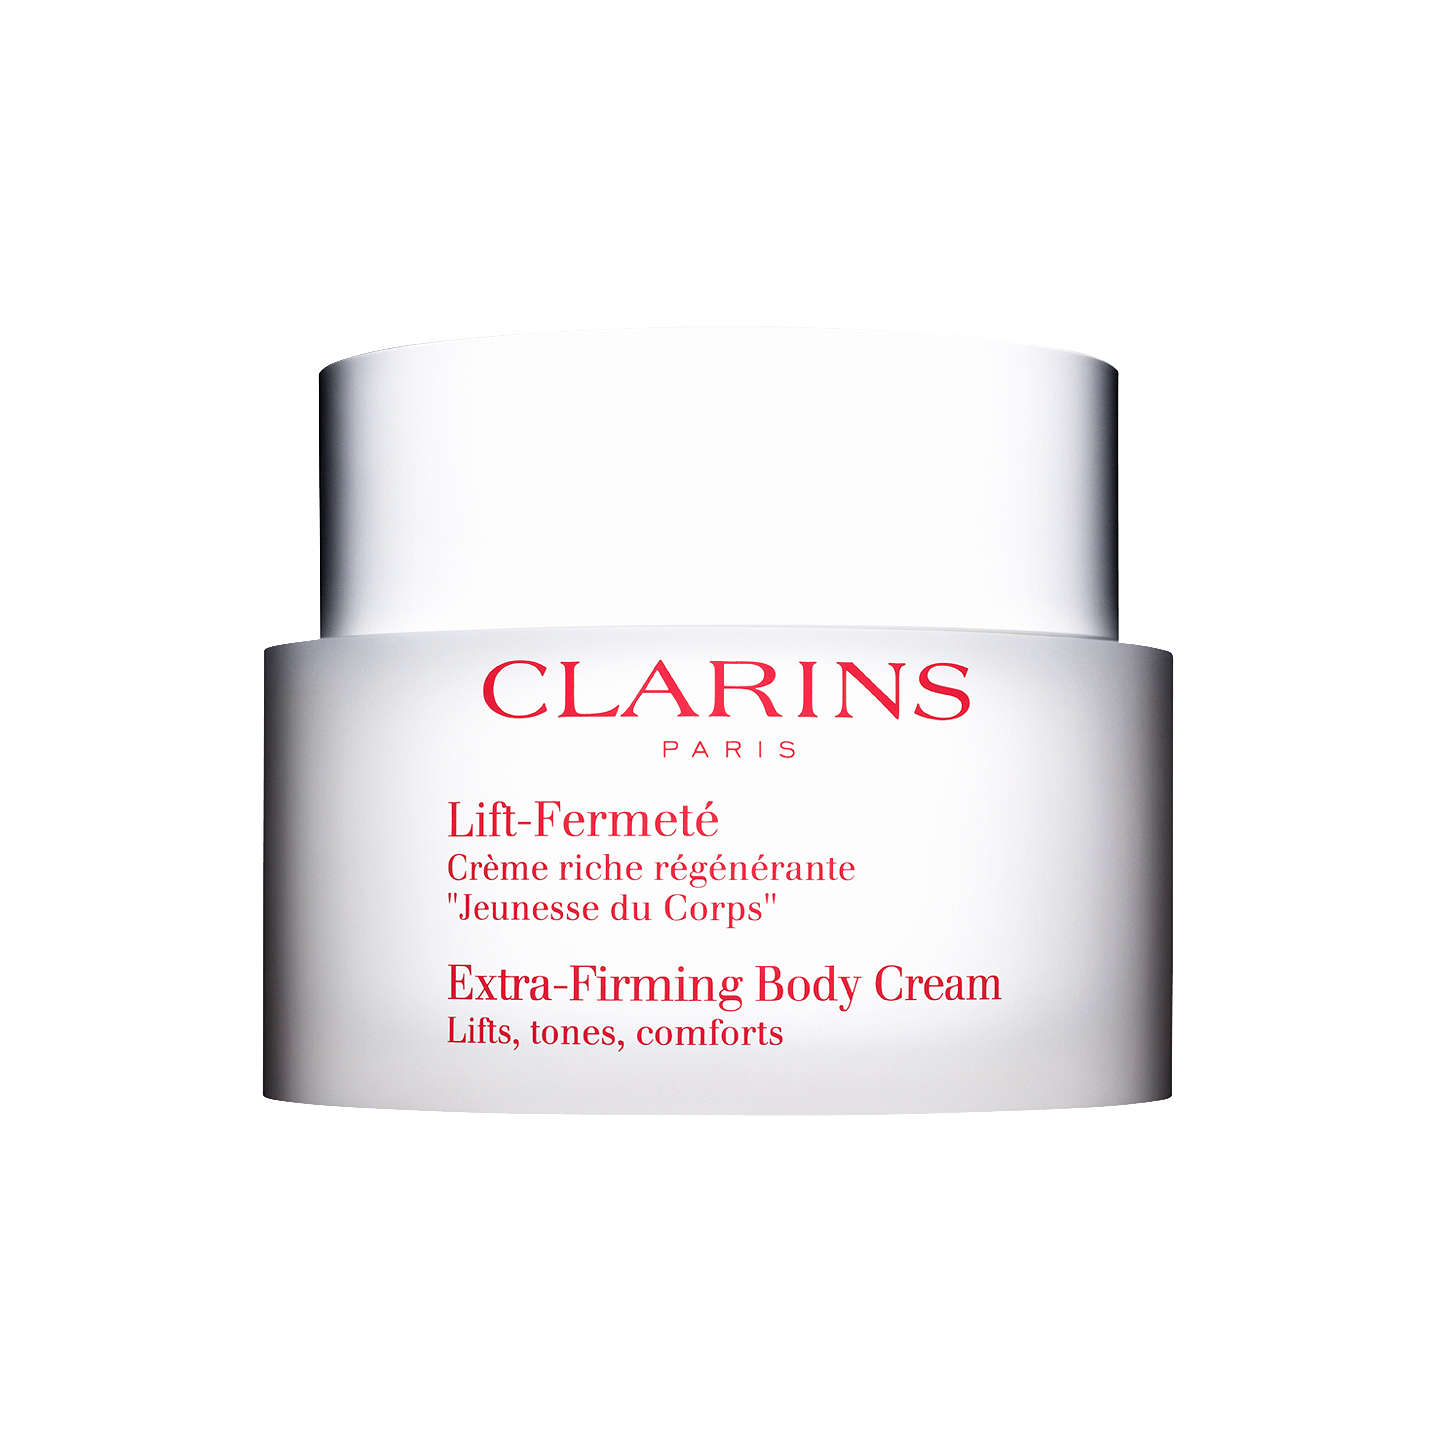 BuyClarins Extra-Firming Body Cream, 200ml Online at johnlewis.com